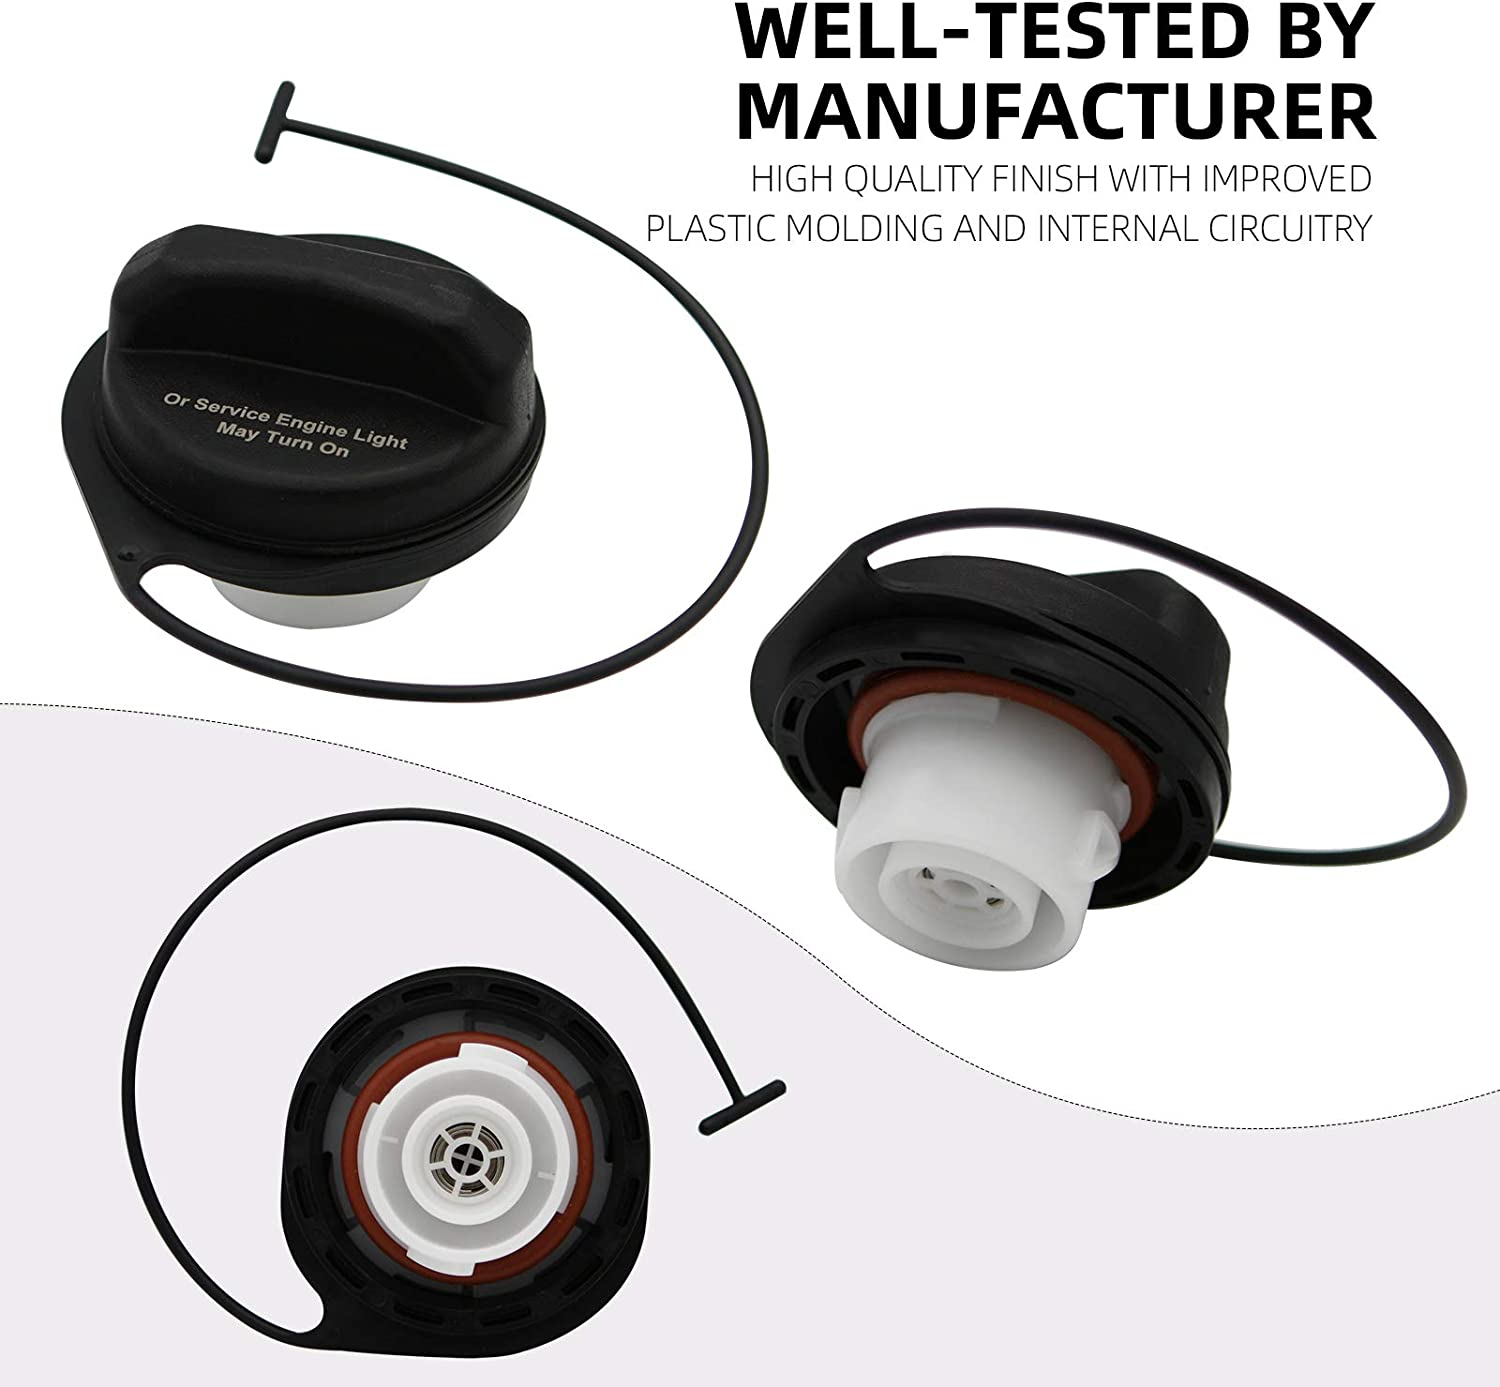 Fuel Tank Gas Cap Assembly Replaces GT330 20915842 for 2004-2011 Chevy Avalanche Silverado Suburban Tahoe Traverse,GMC Acadia Sierra Yukon,Buick Enclave,Cadillac Escalade,Saturn Outlook by Sikawai